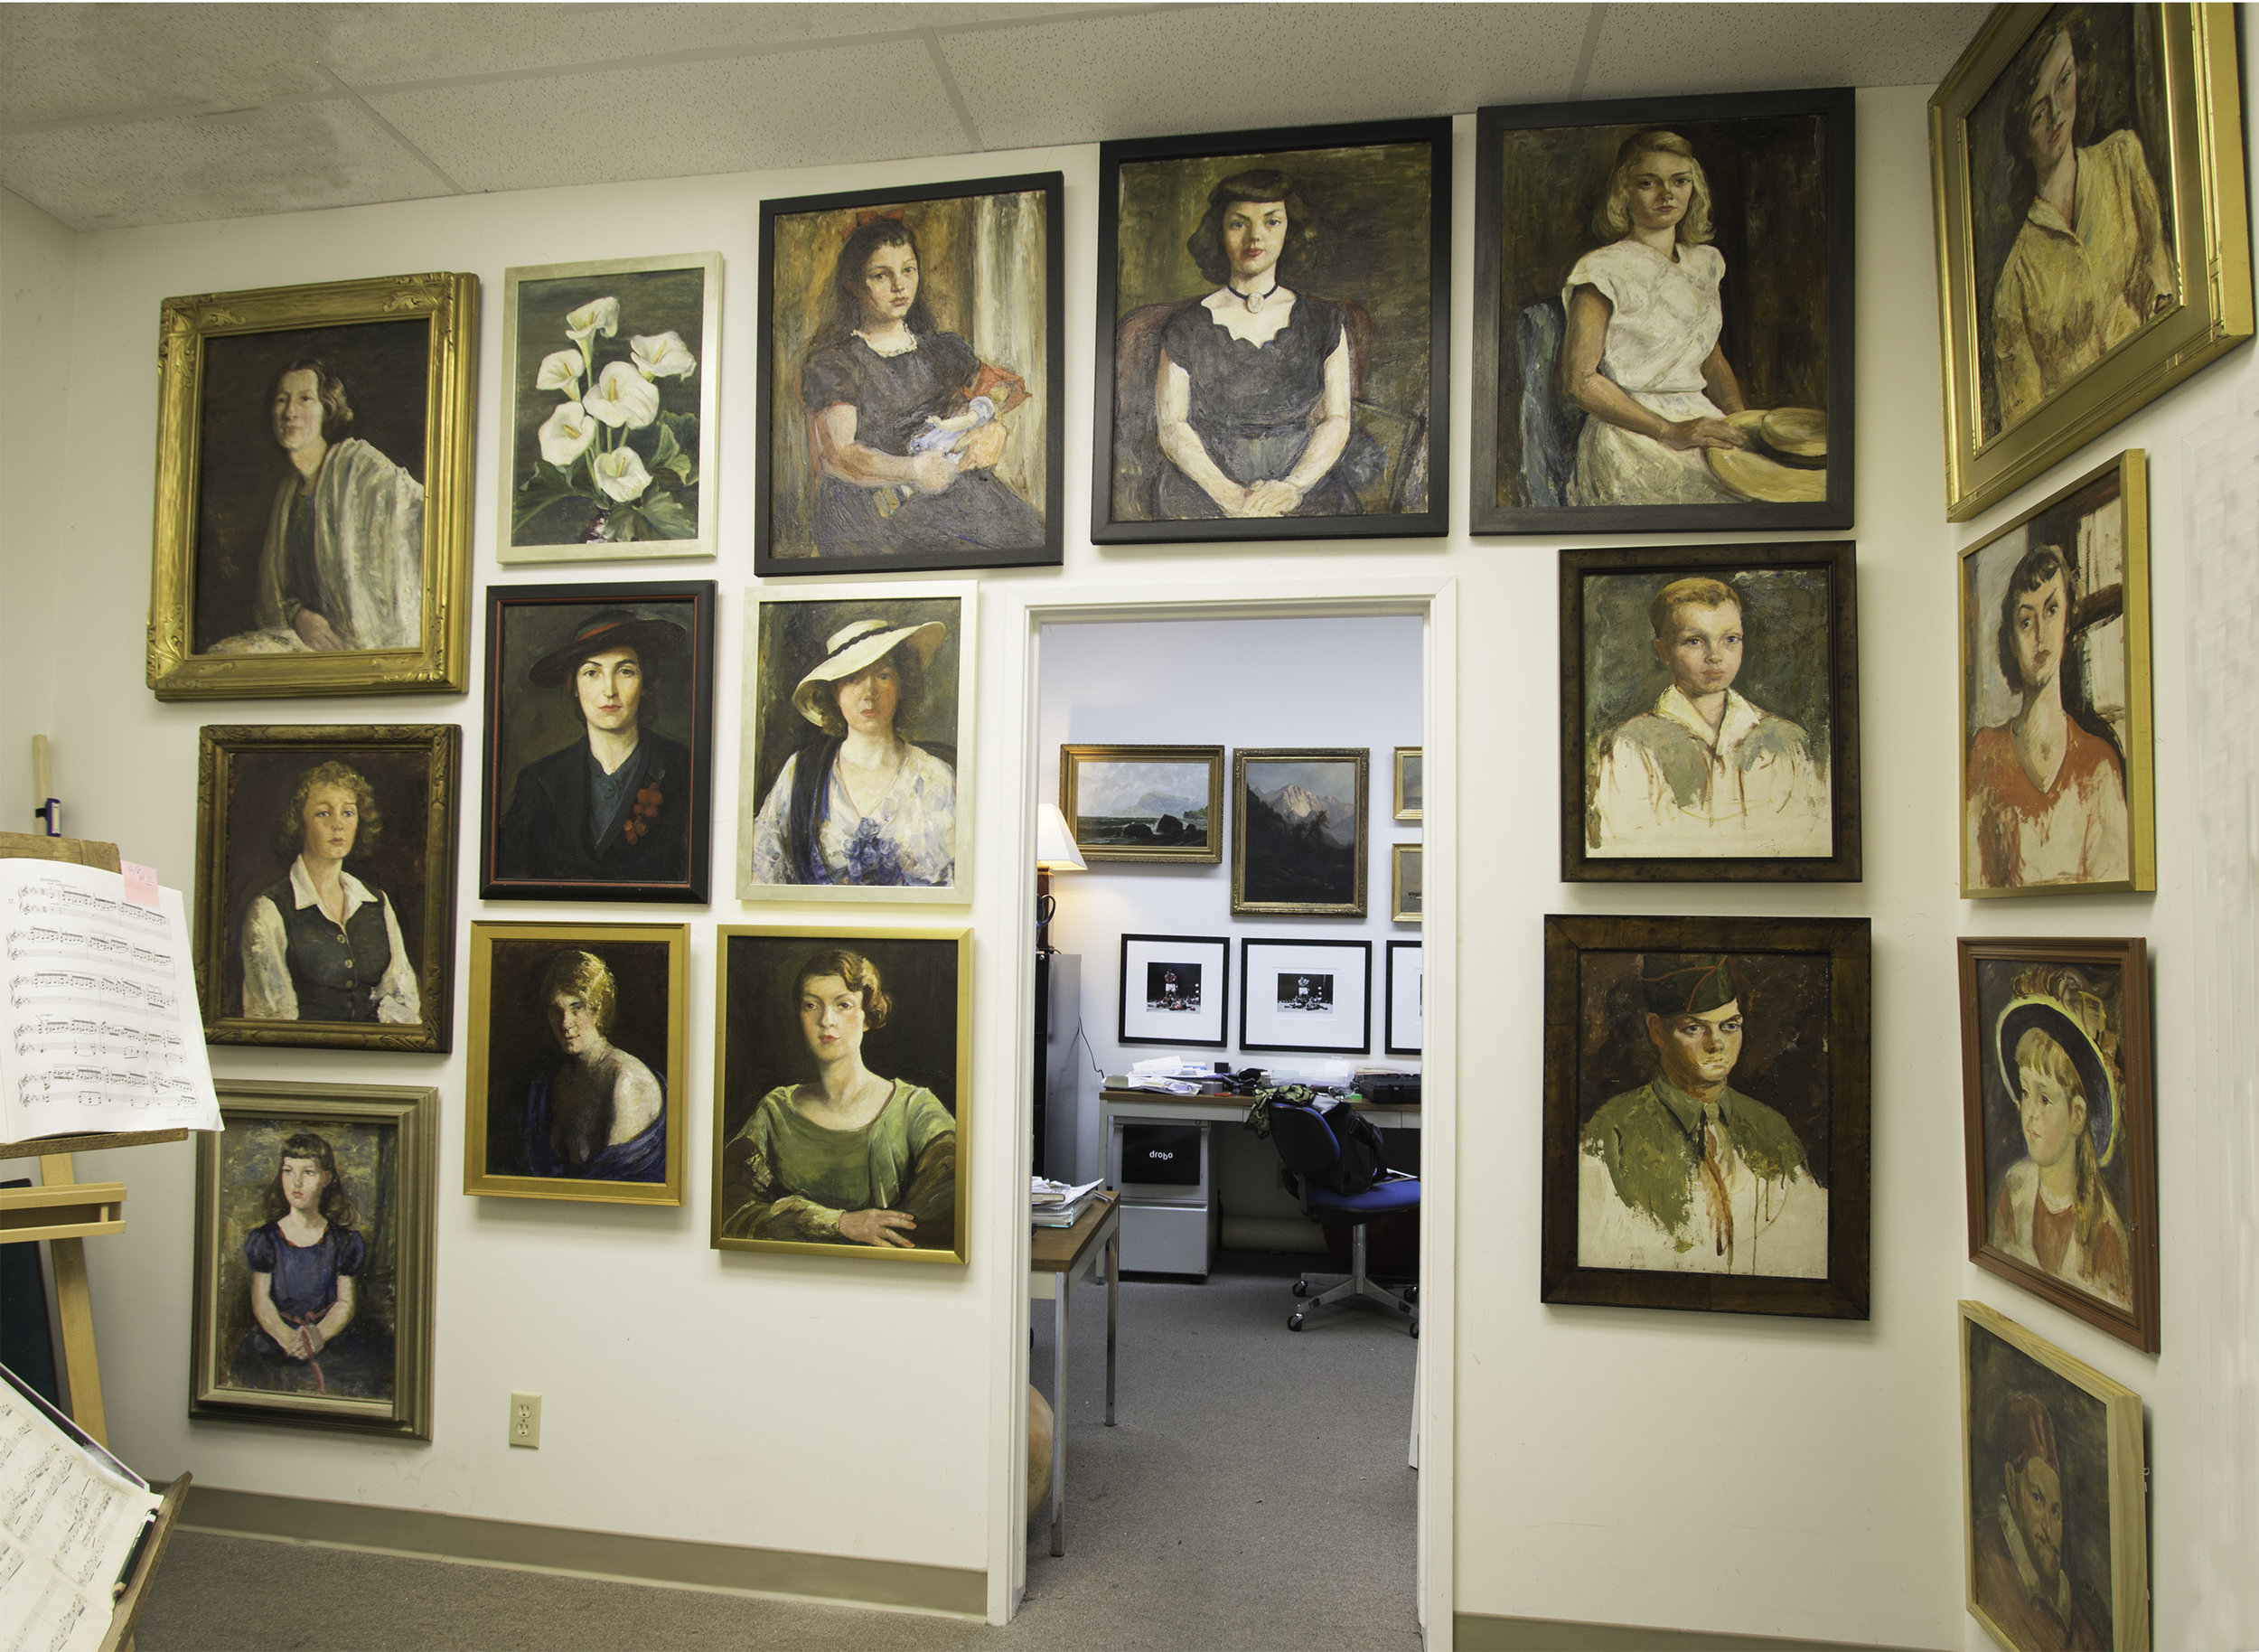 My office wall is holding up all the Antonia Greene paintings I own. These were painted between the 1920's and the 1950's.